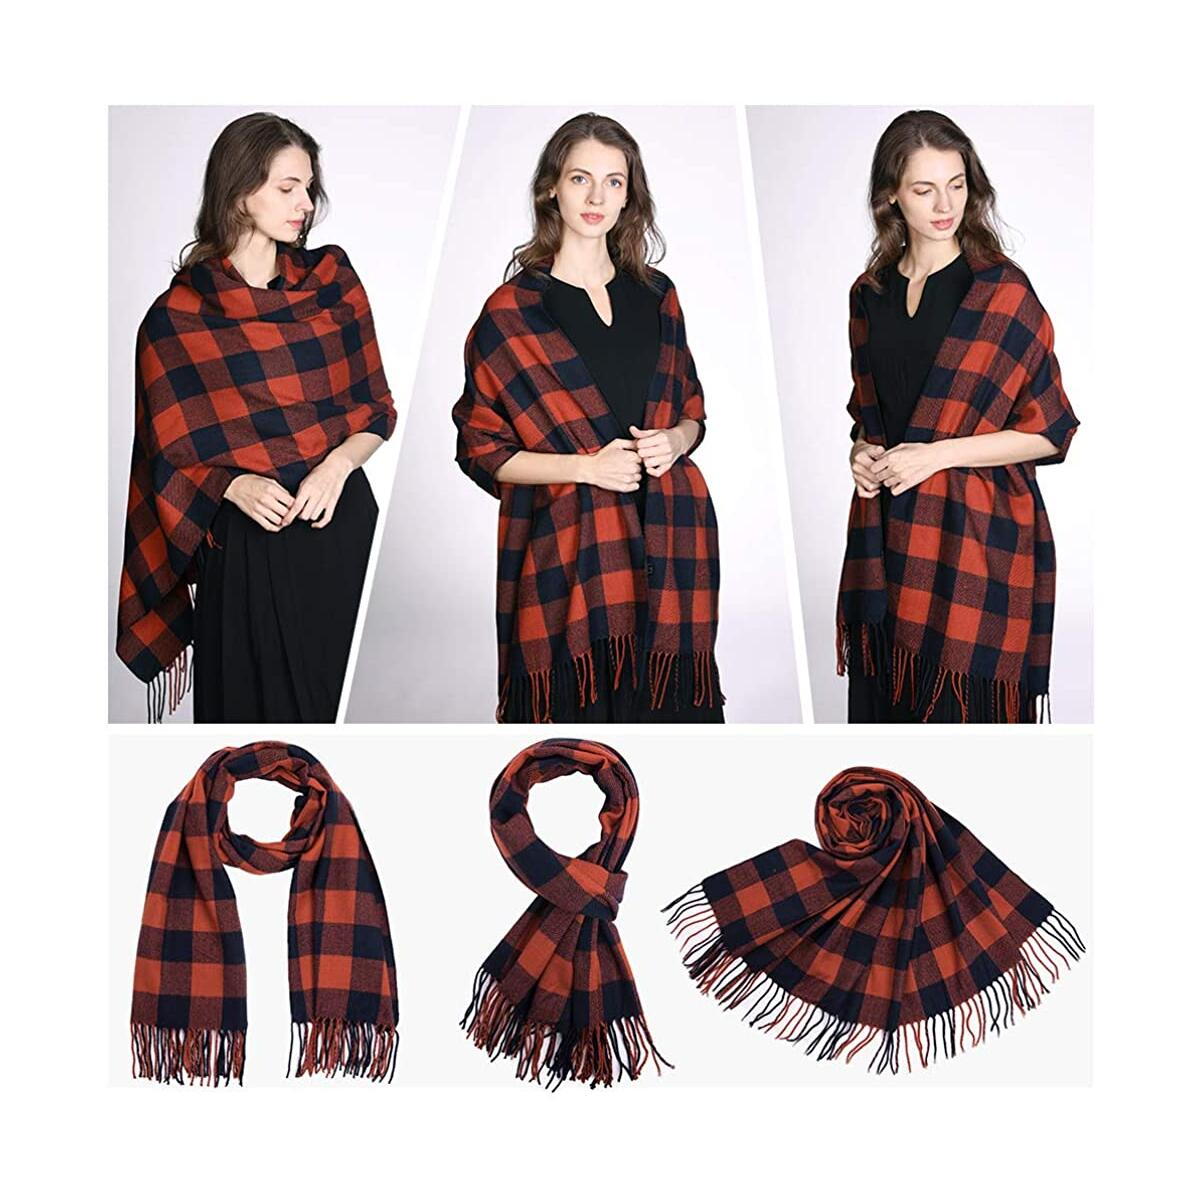 Womens Warm Cozy Cashmere Feel Winter Scarf for Women Soft Woven Scarves Plaid Pattern Orange/Navy